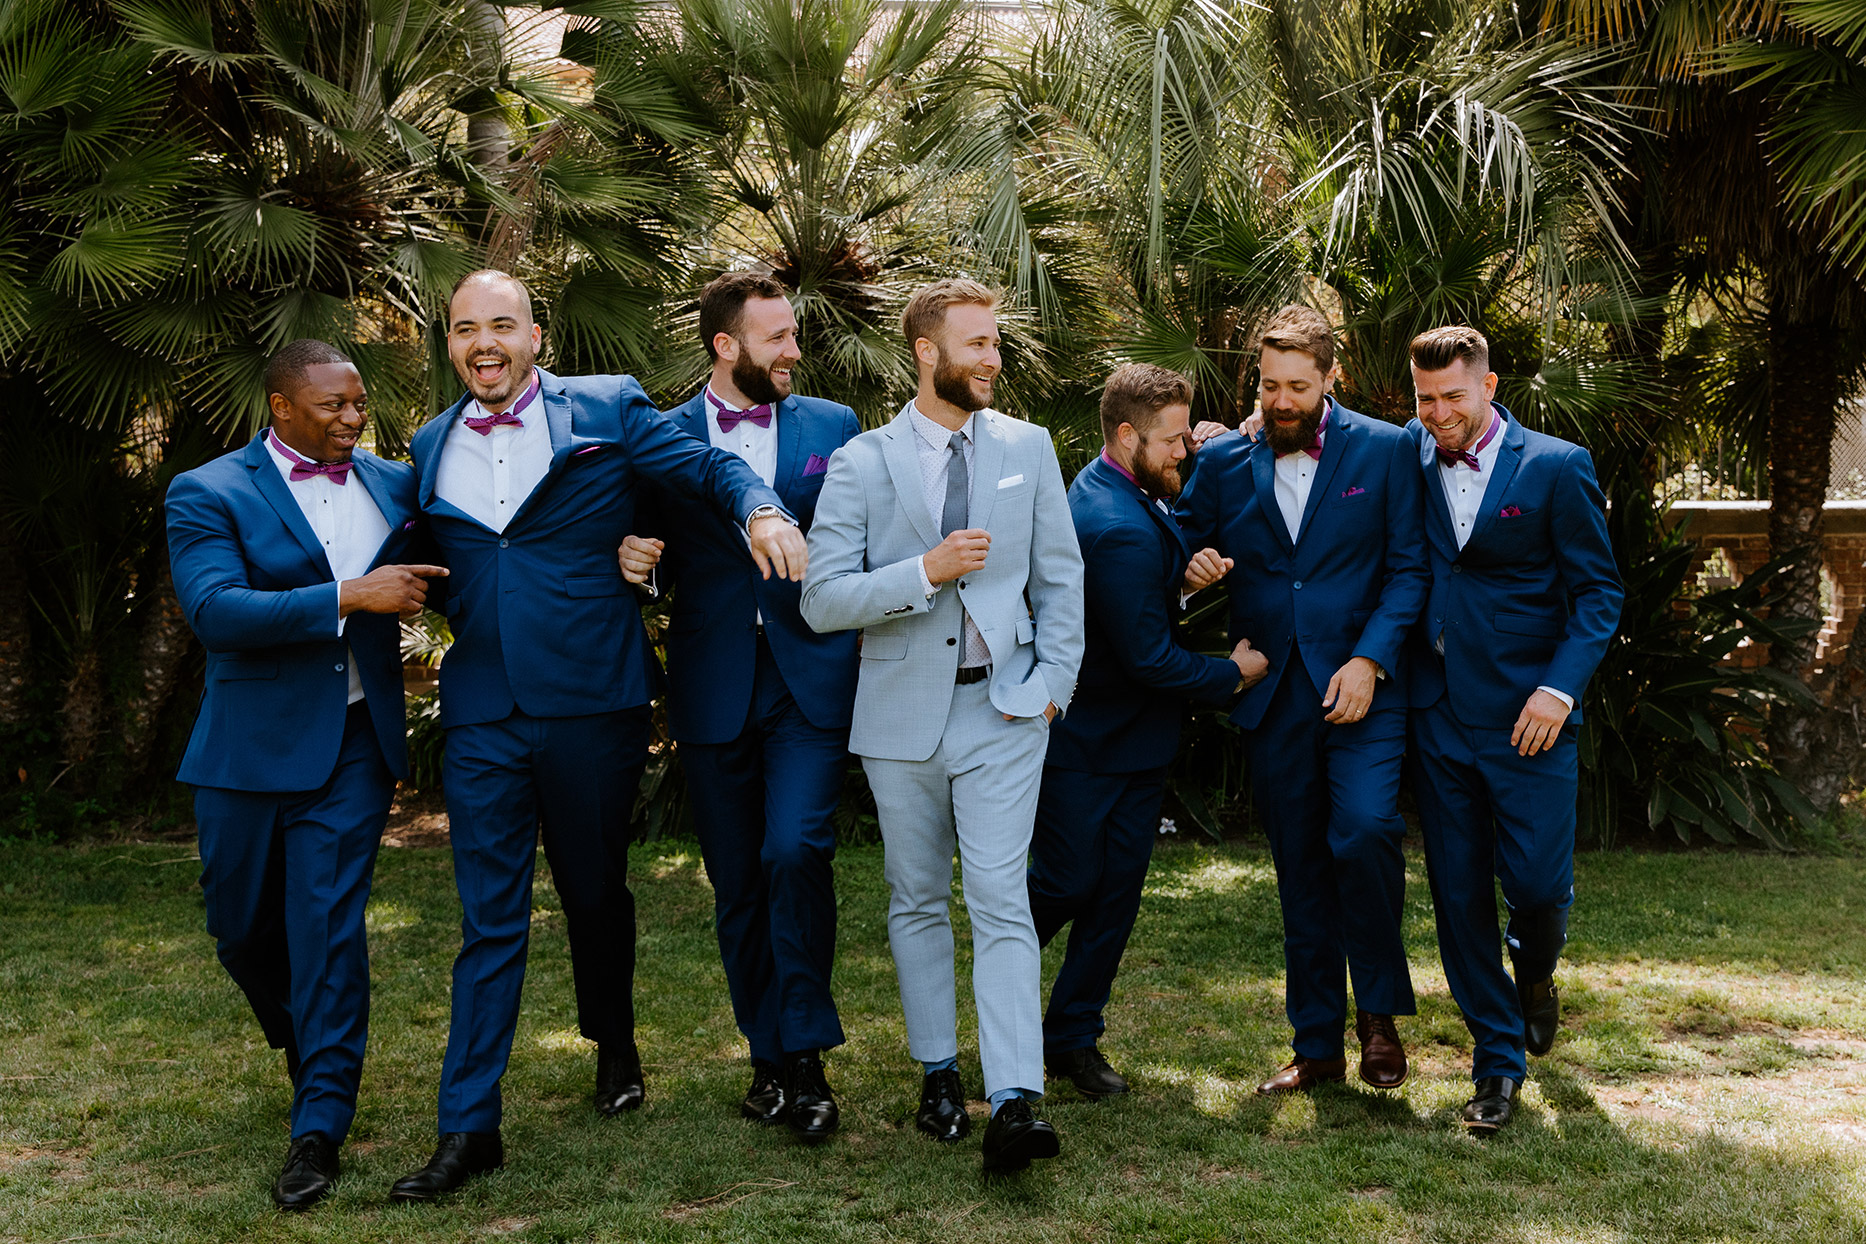 groom and groomsmen in blue suits in front of palm trees